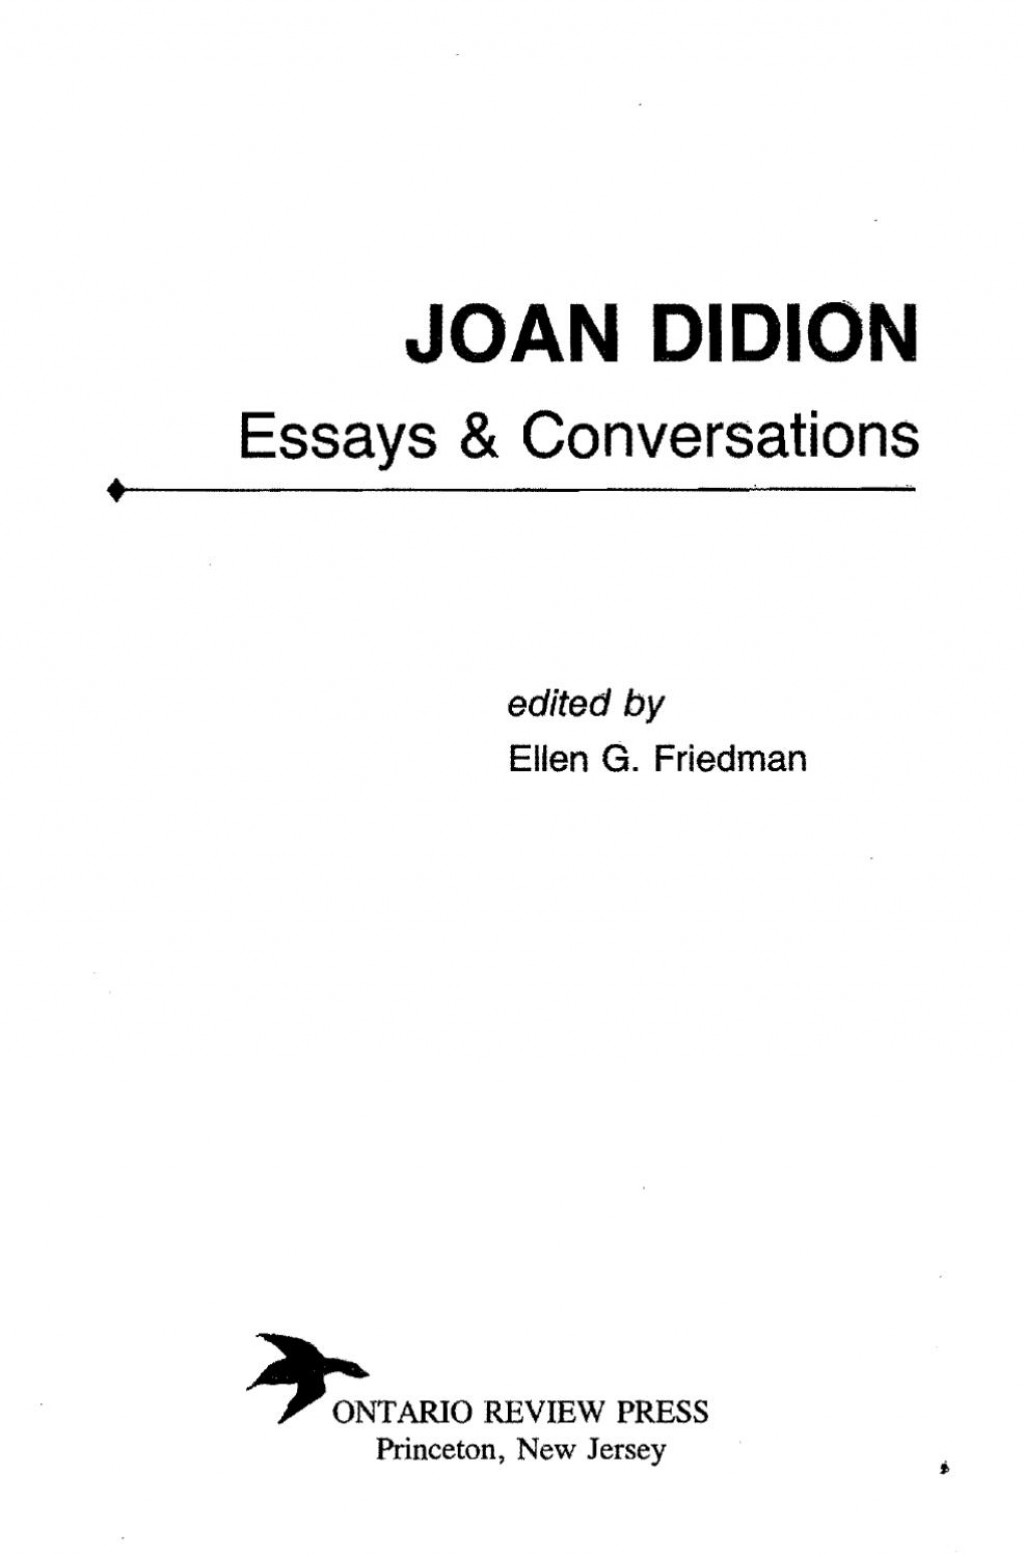 017 Essay Example Page 1 Joan Didion Singular Essays Collections On Santa Ana Winds Amazon Large